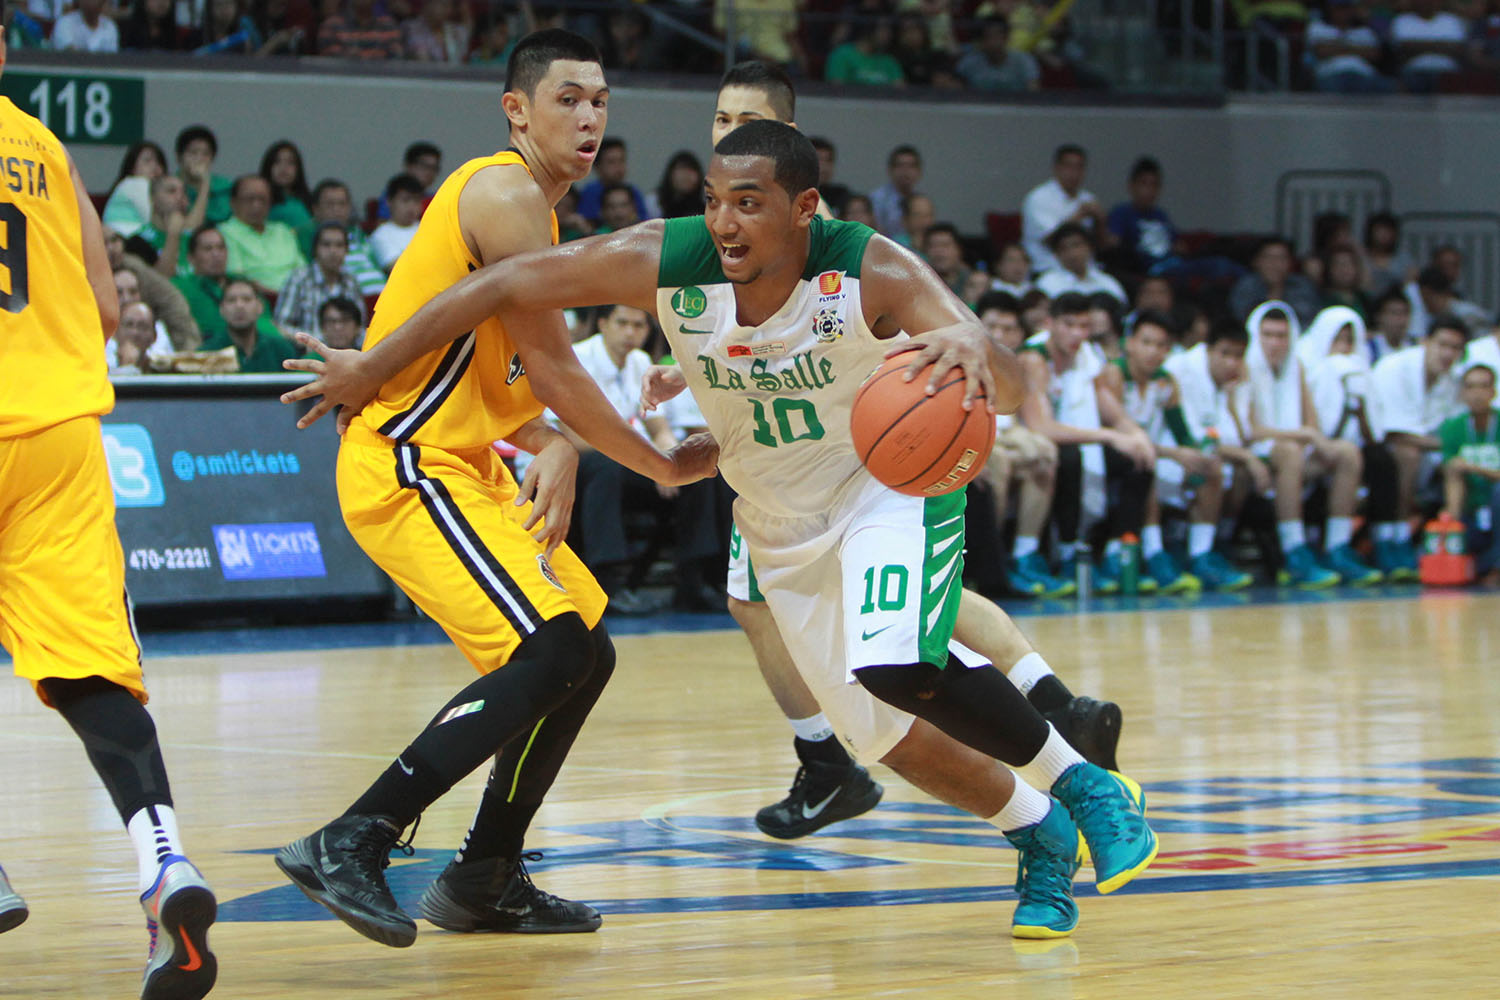 Perkins has come up big for La Salle in their wins. (Photo Credit: Yahoo! Sports PH)